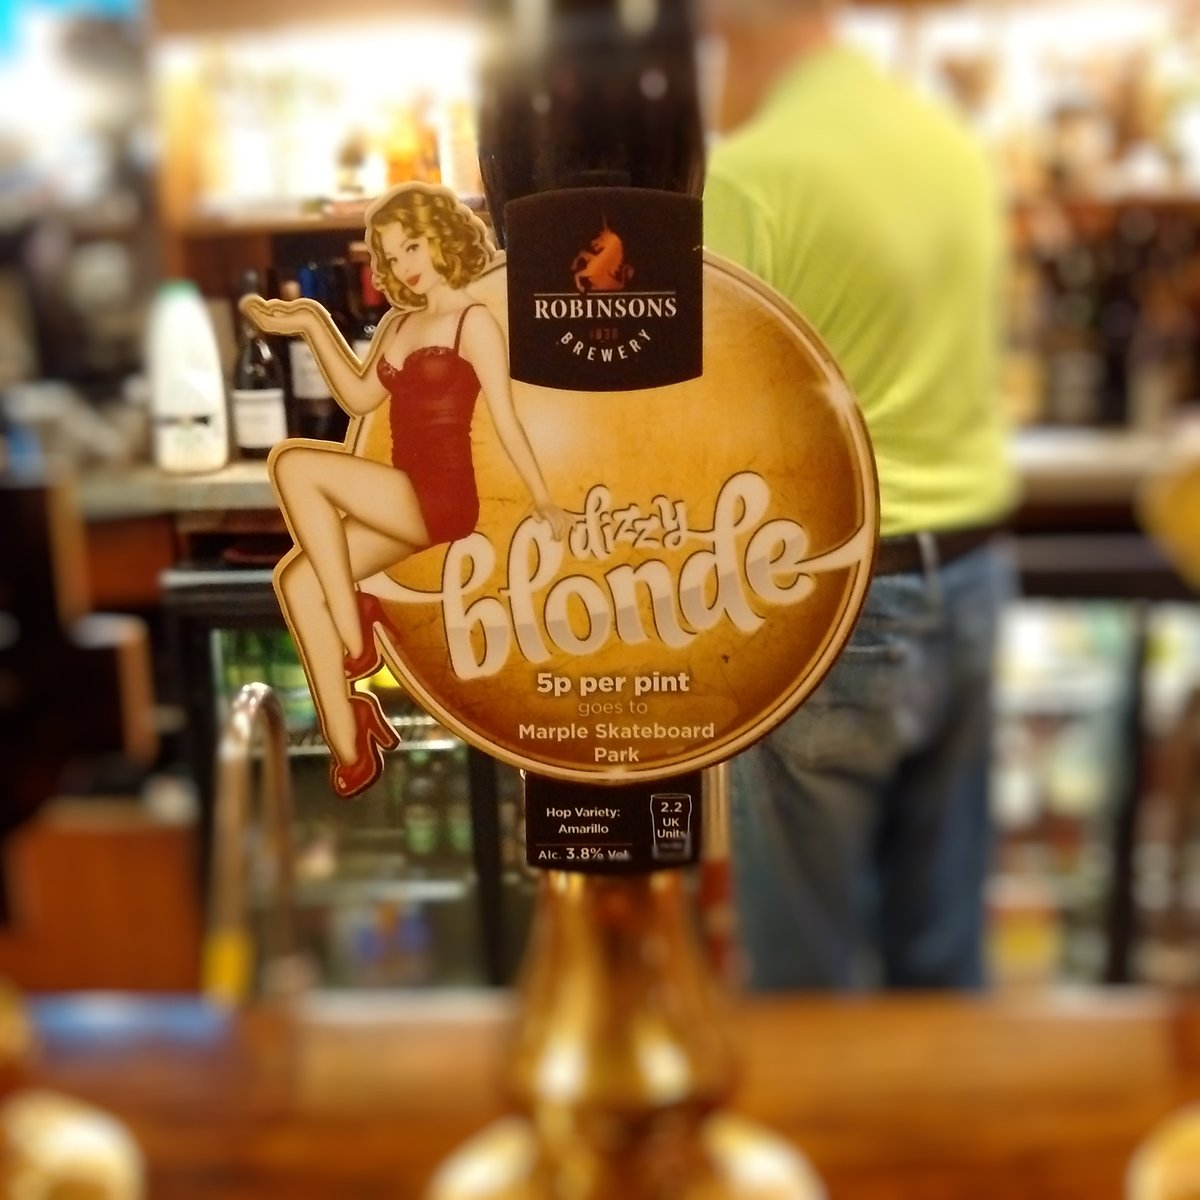 Dizzy Blonde at The Ring o' Bells